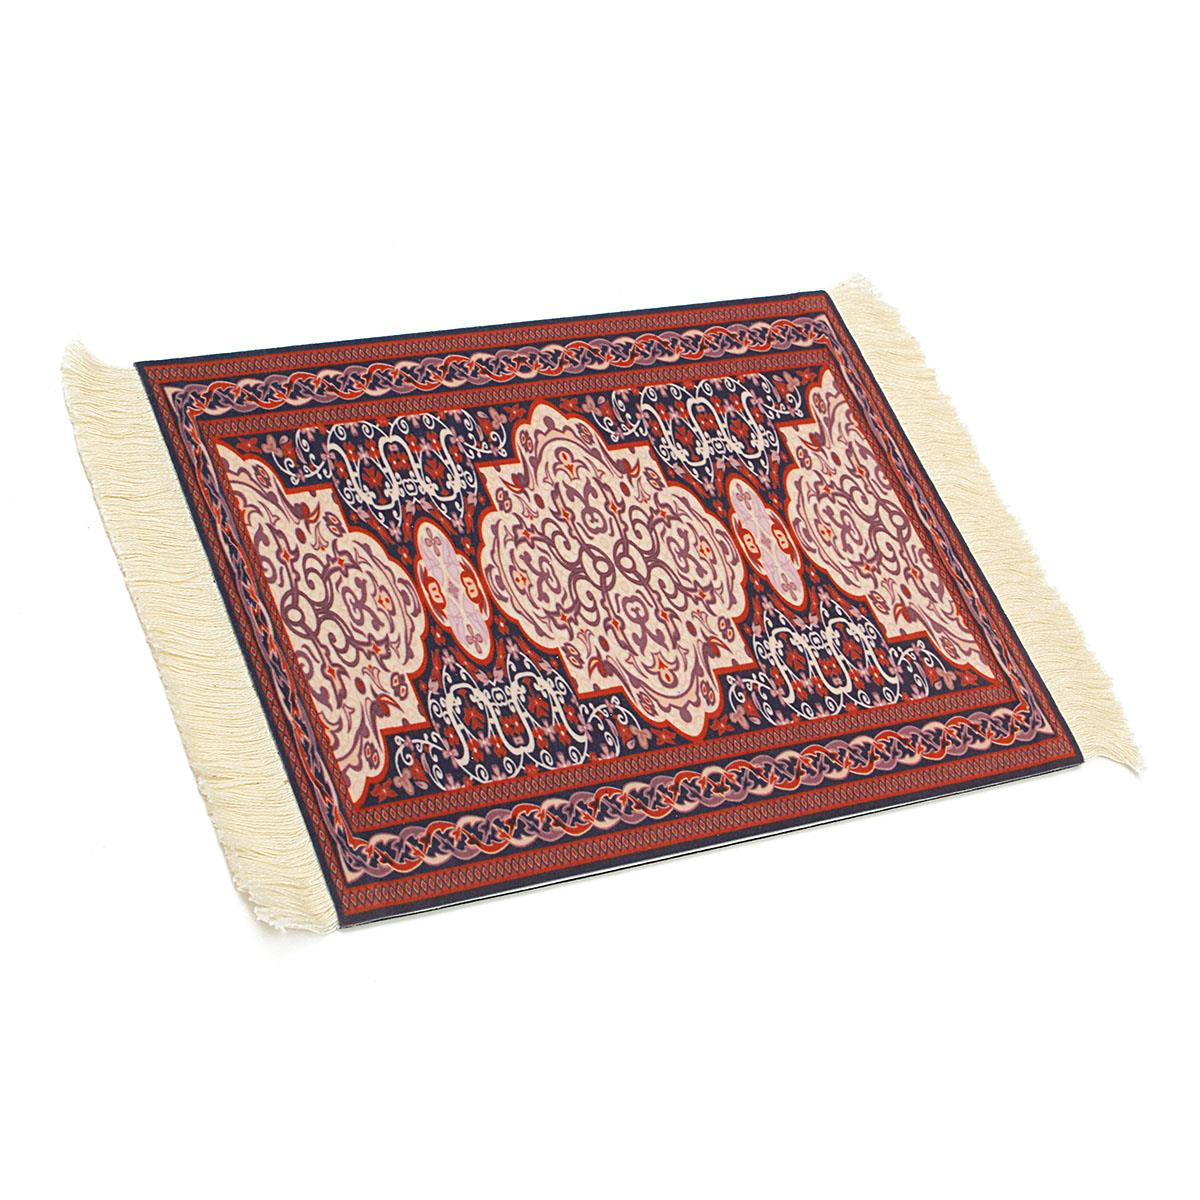 Vintage Persian Style Mousemat Mini Woven Rug Mouse Pad Carpet With Fringe  Placemat Home Office Decorative Tools Houseware In Mat From Home U0026 Garden  On ...